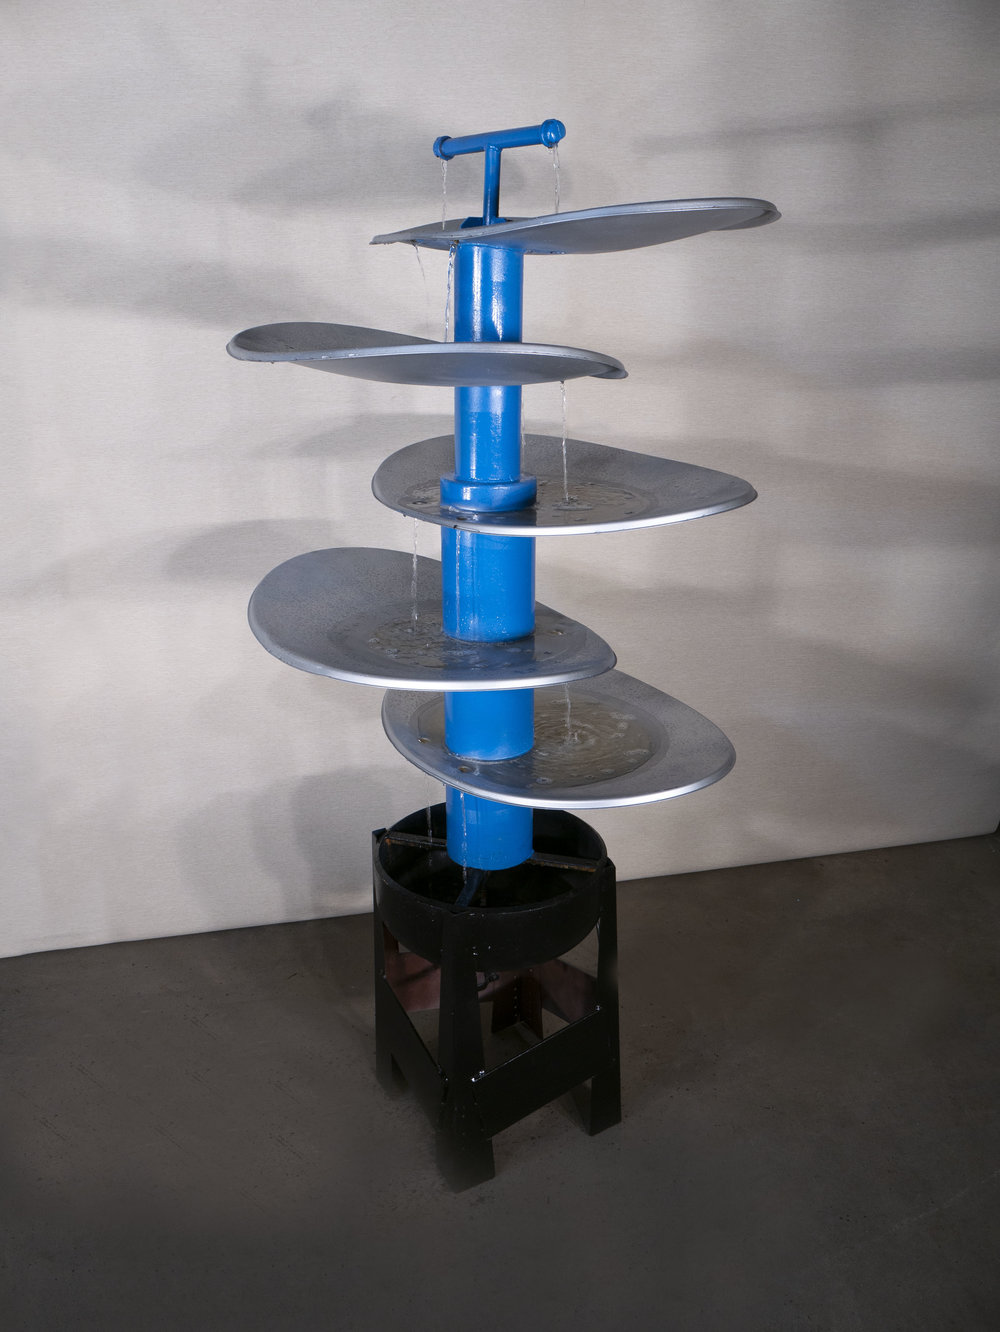 5 Tier Water Fountain   MyInspirationEarth  (James Dickson)  Functional Art